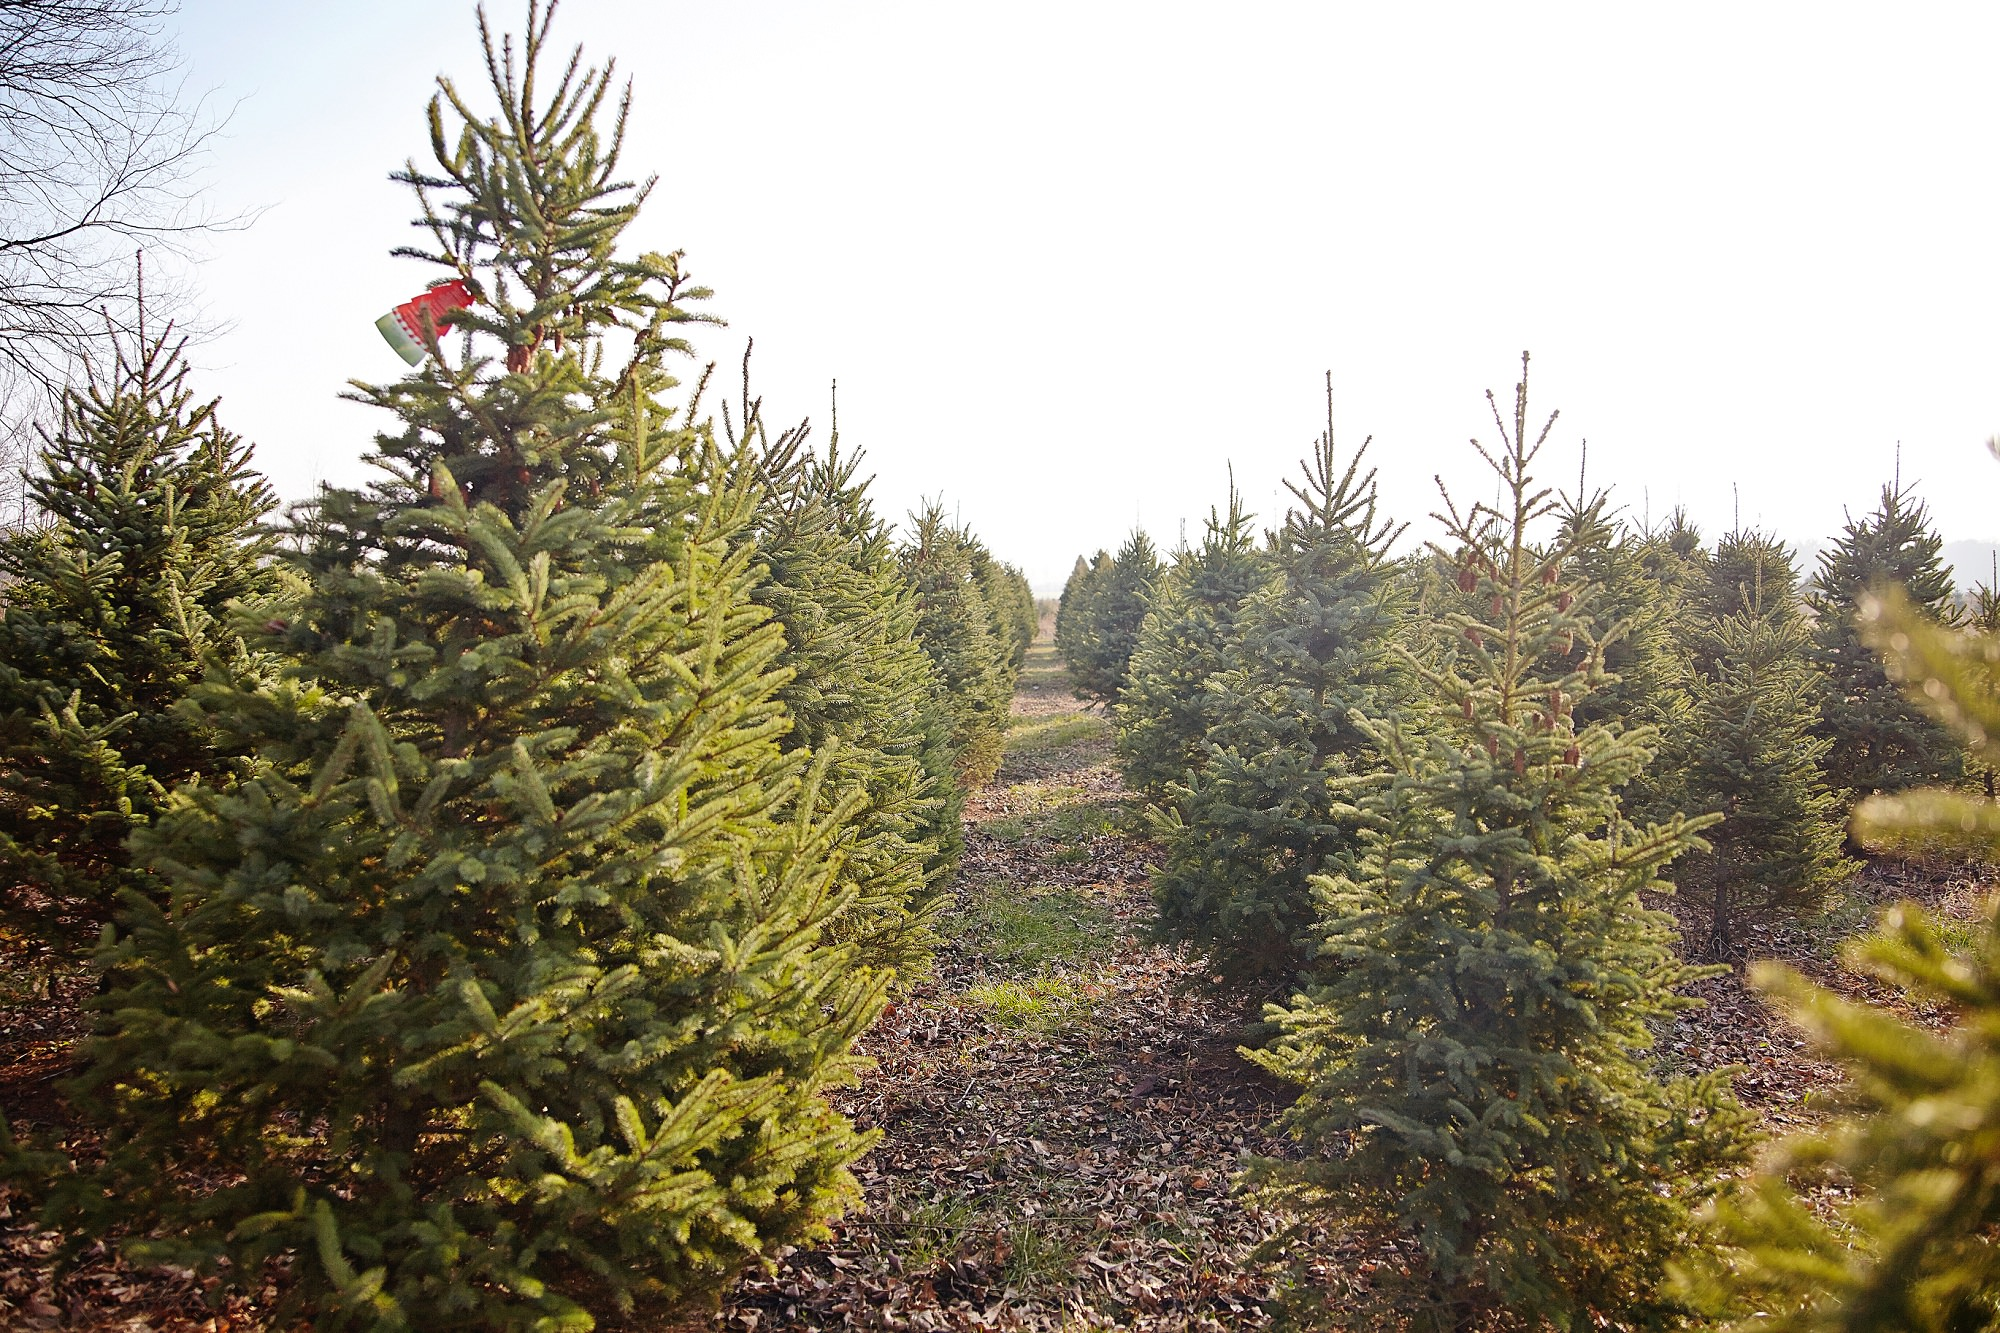 Mequon Christmas Tree Farm